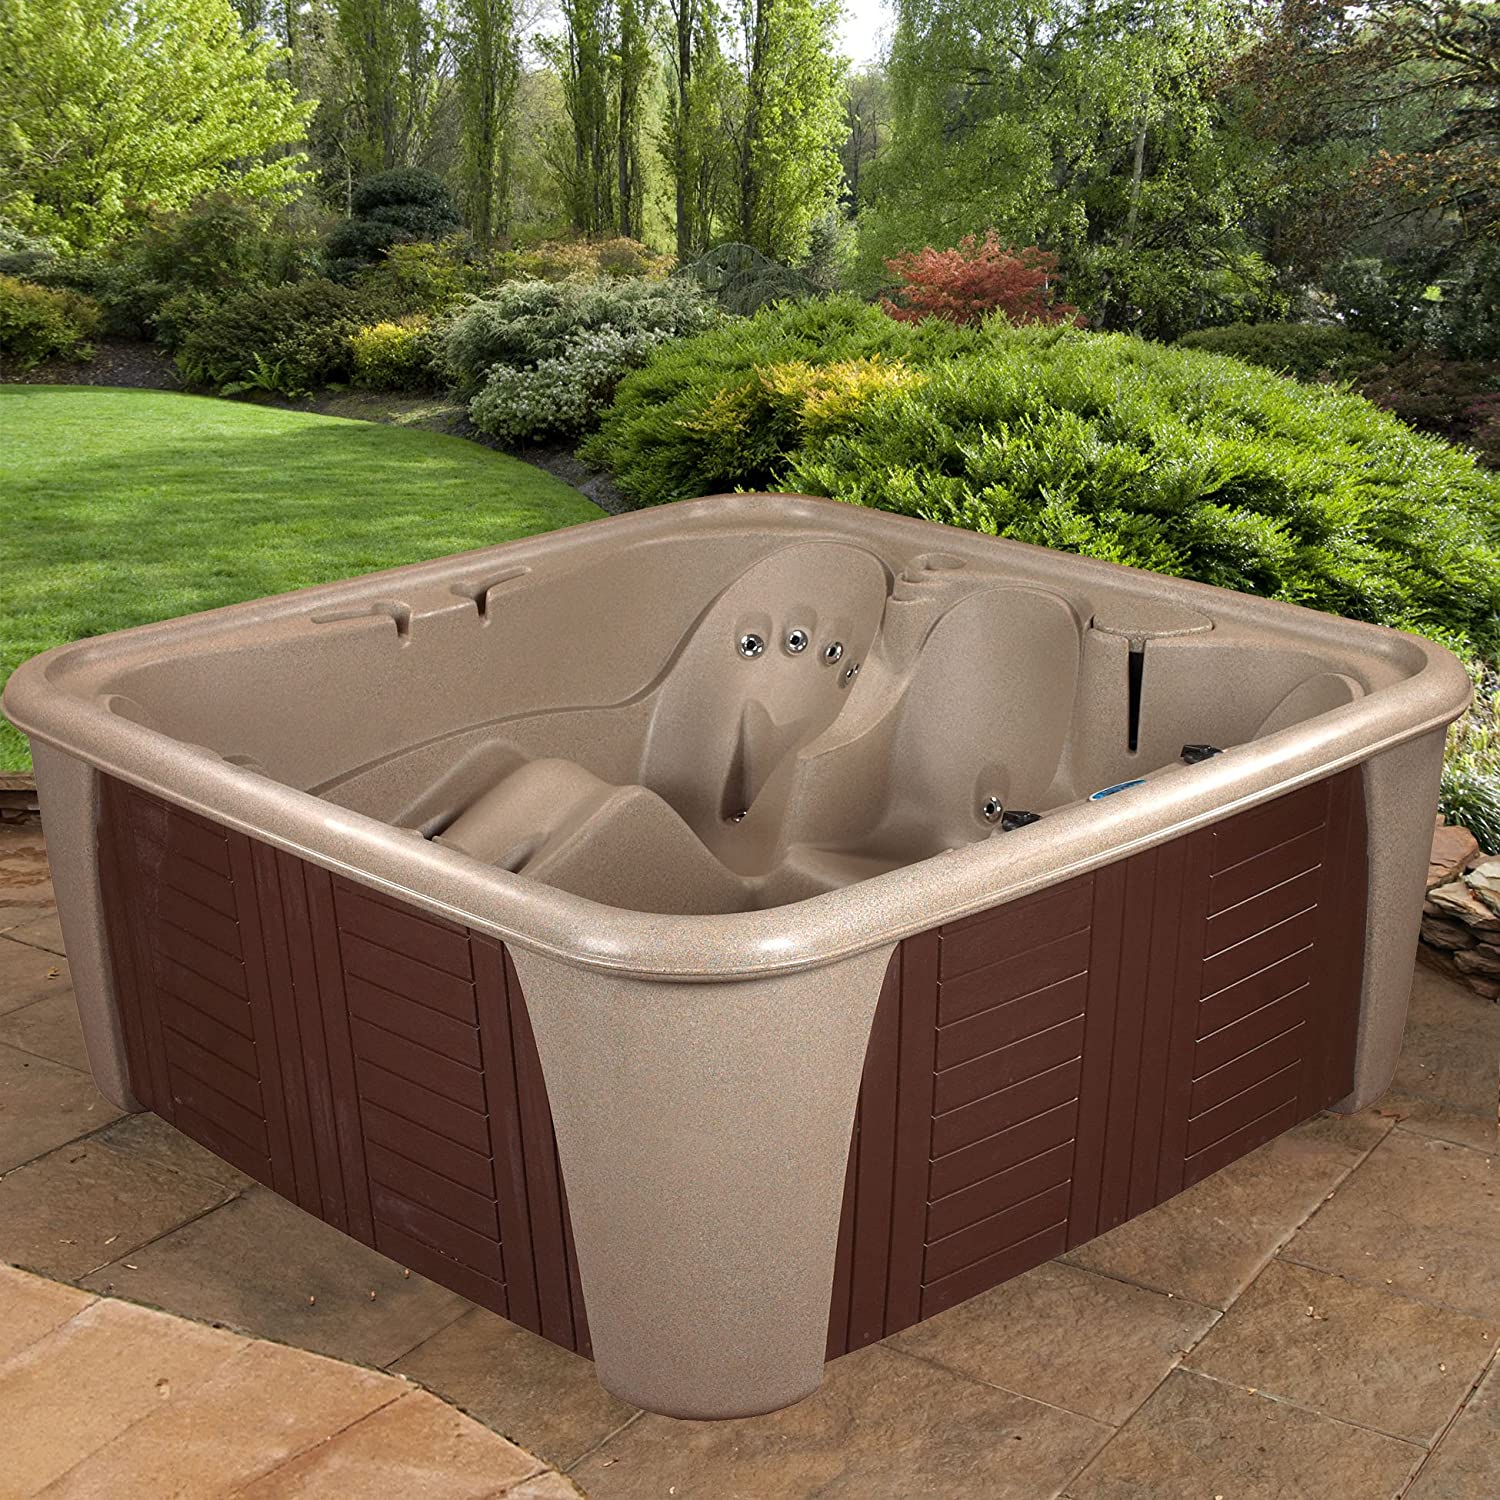 Essential Hot Tubs 24 Jets Rainier Hot Tub, Cobblestone Espresso